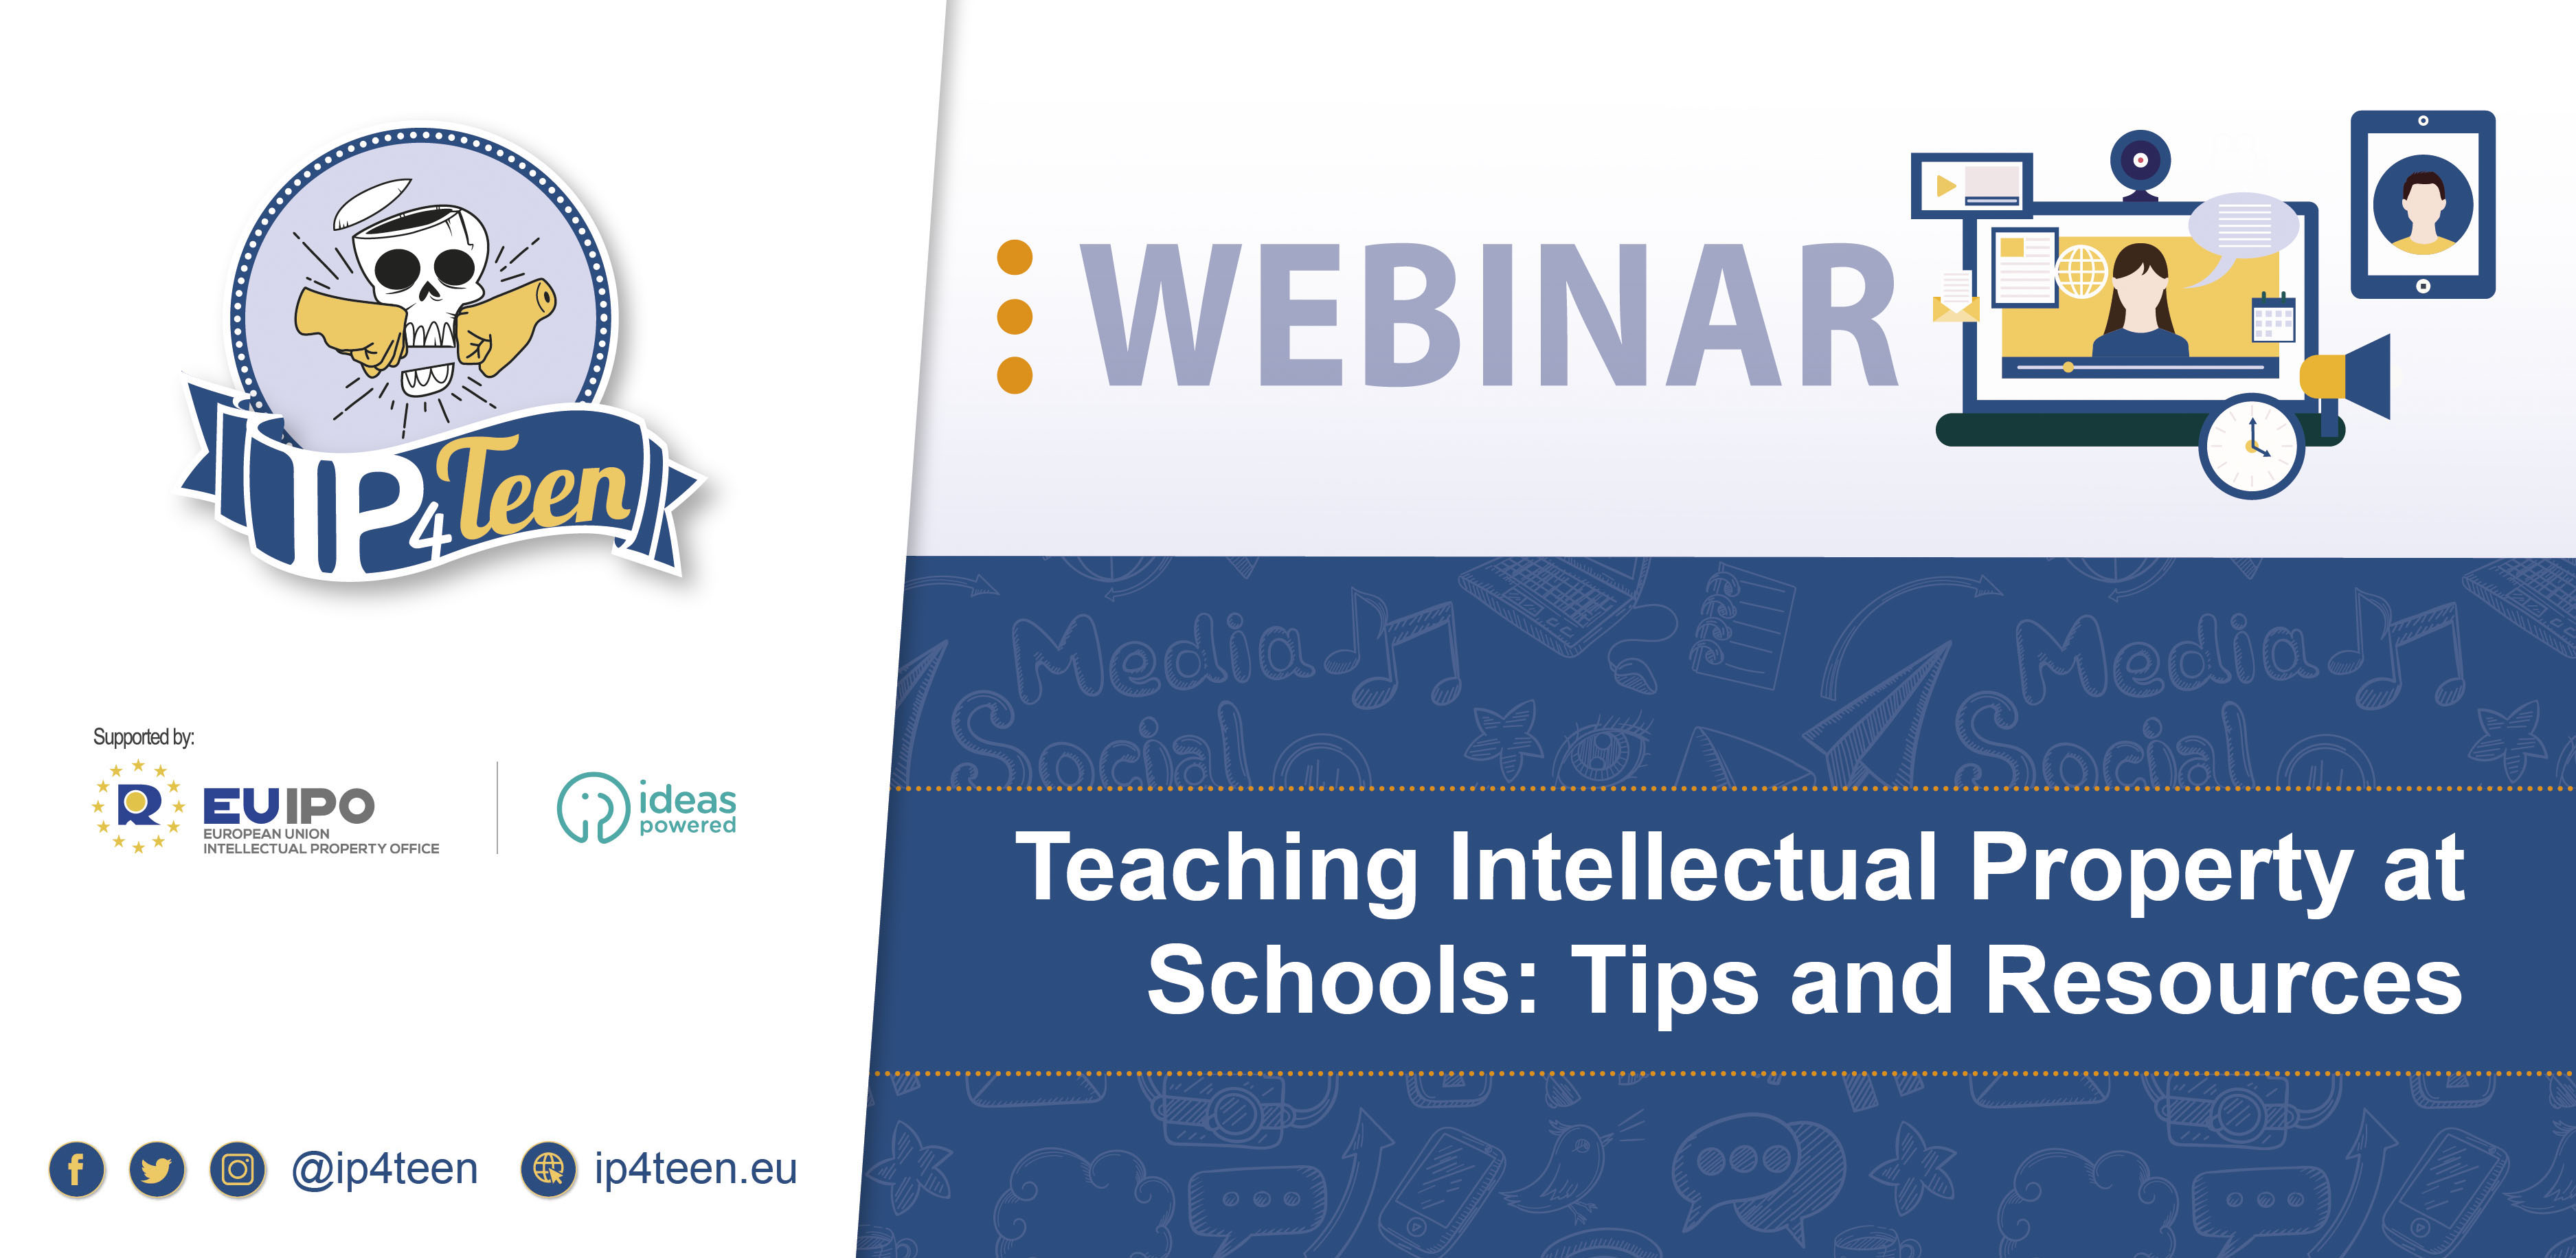 Teaching Intellectual Property at Schools: Tips and Resources